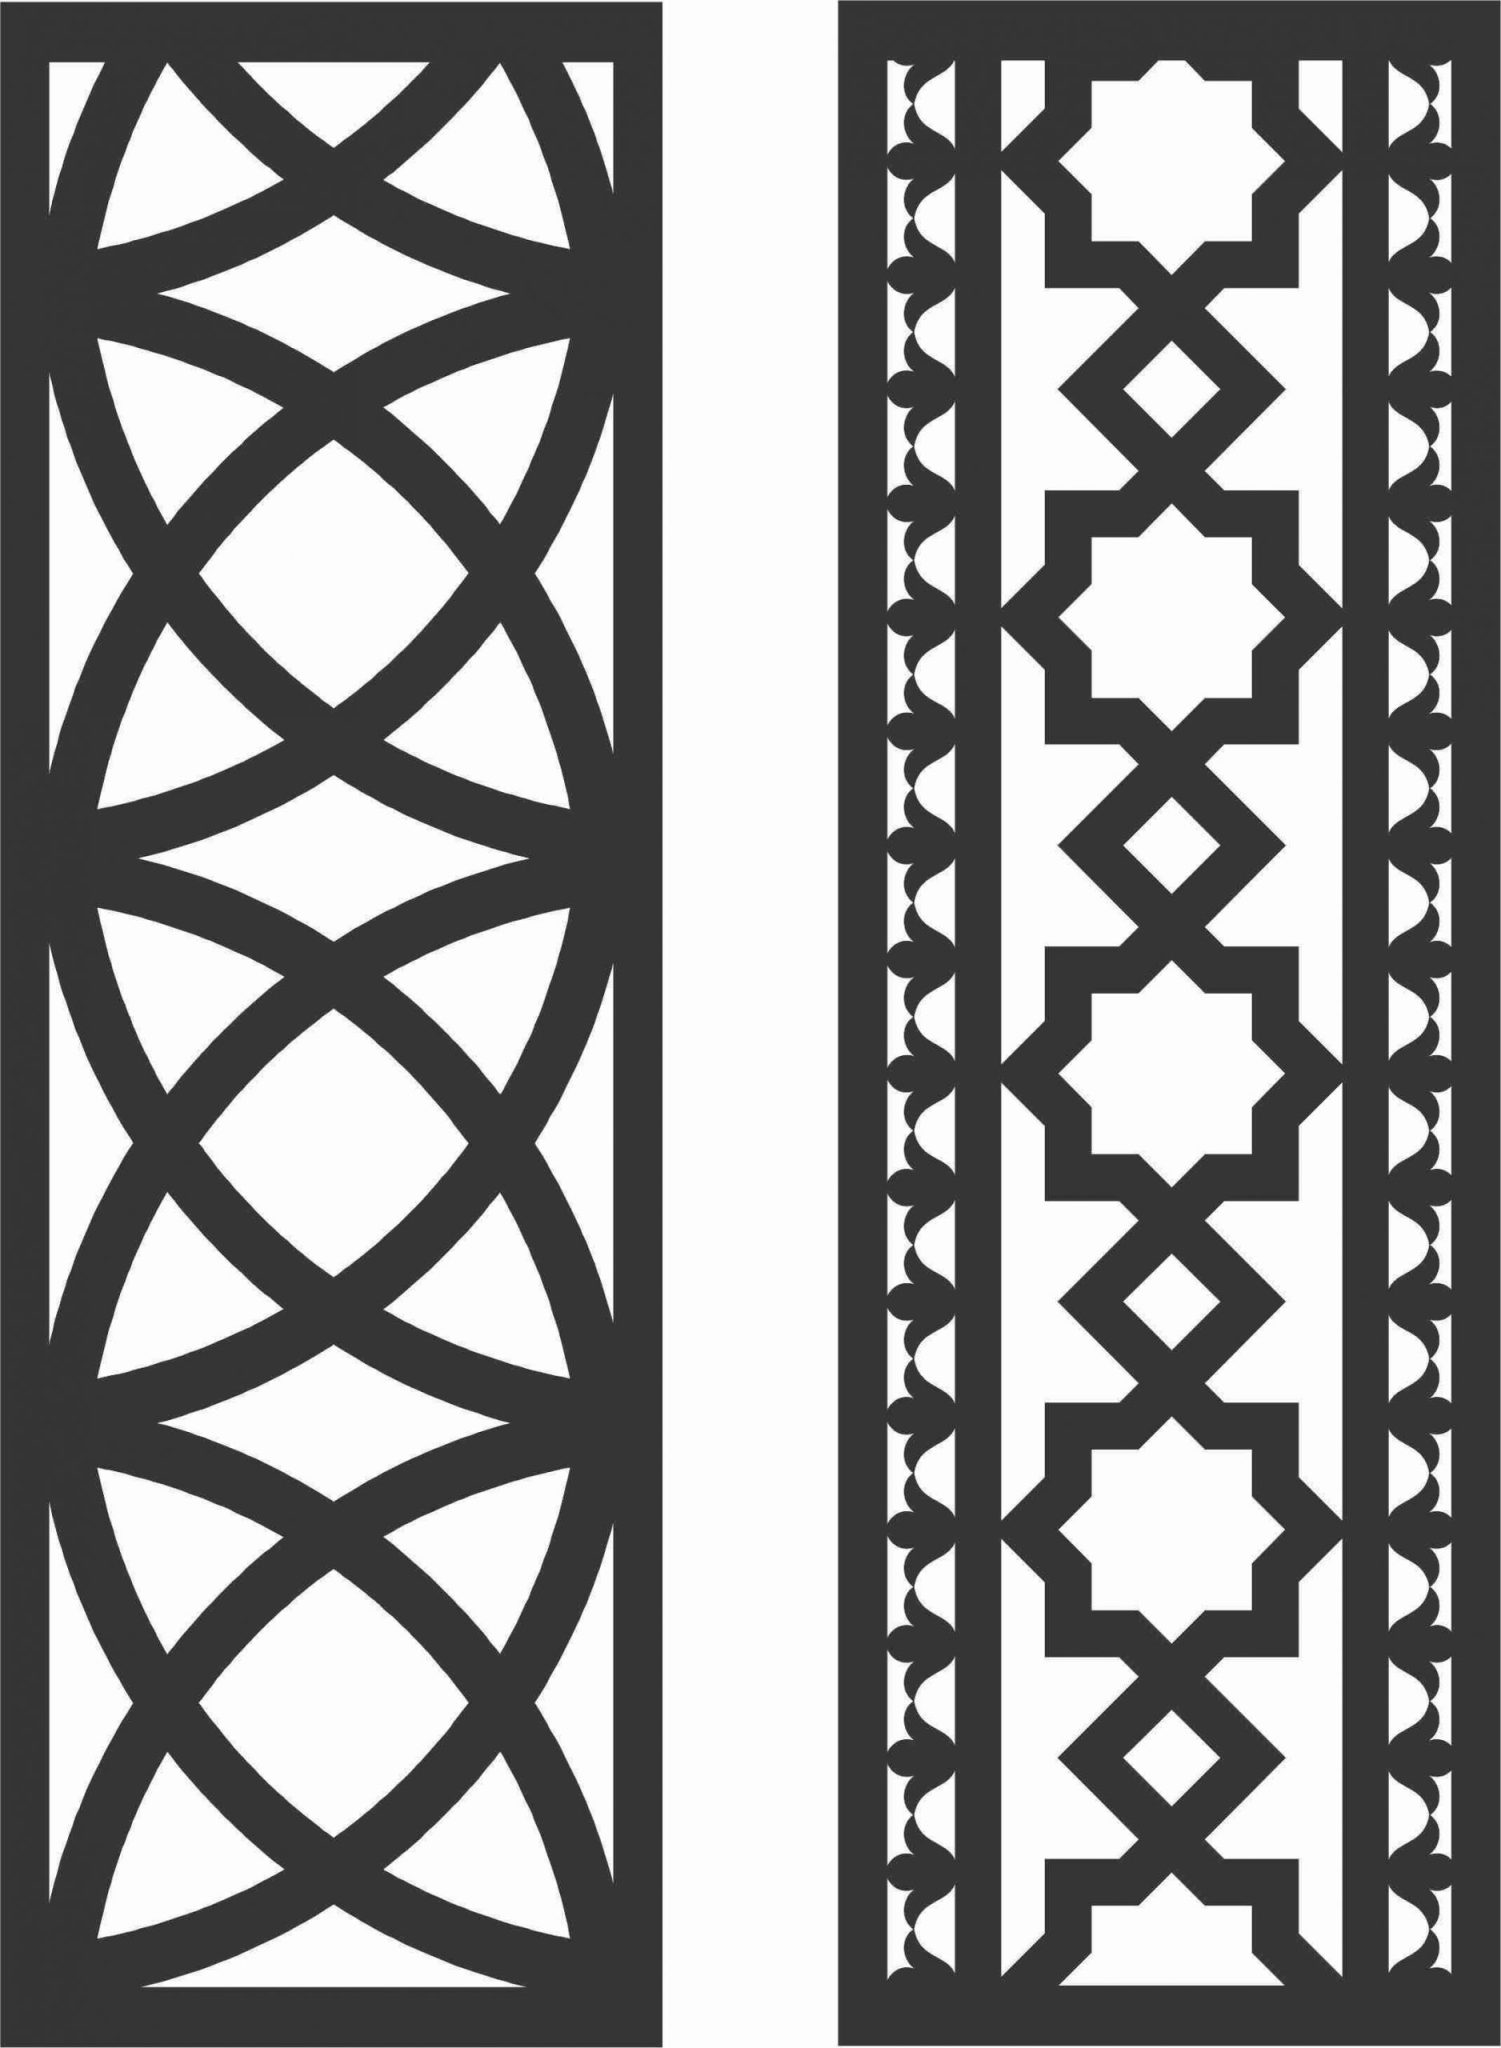 Floral Screen Patterns Design 45 Free DXF File